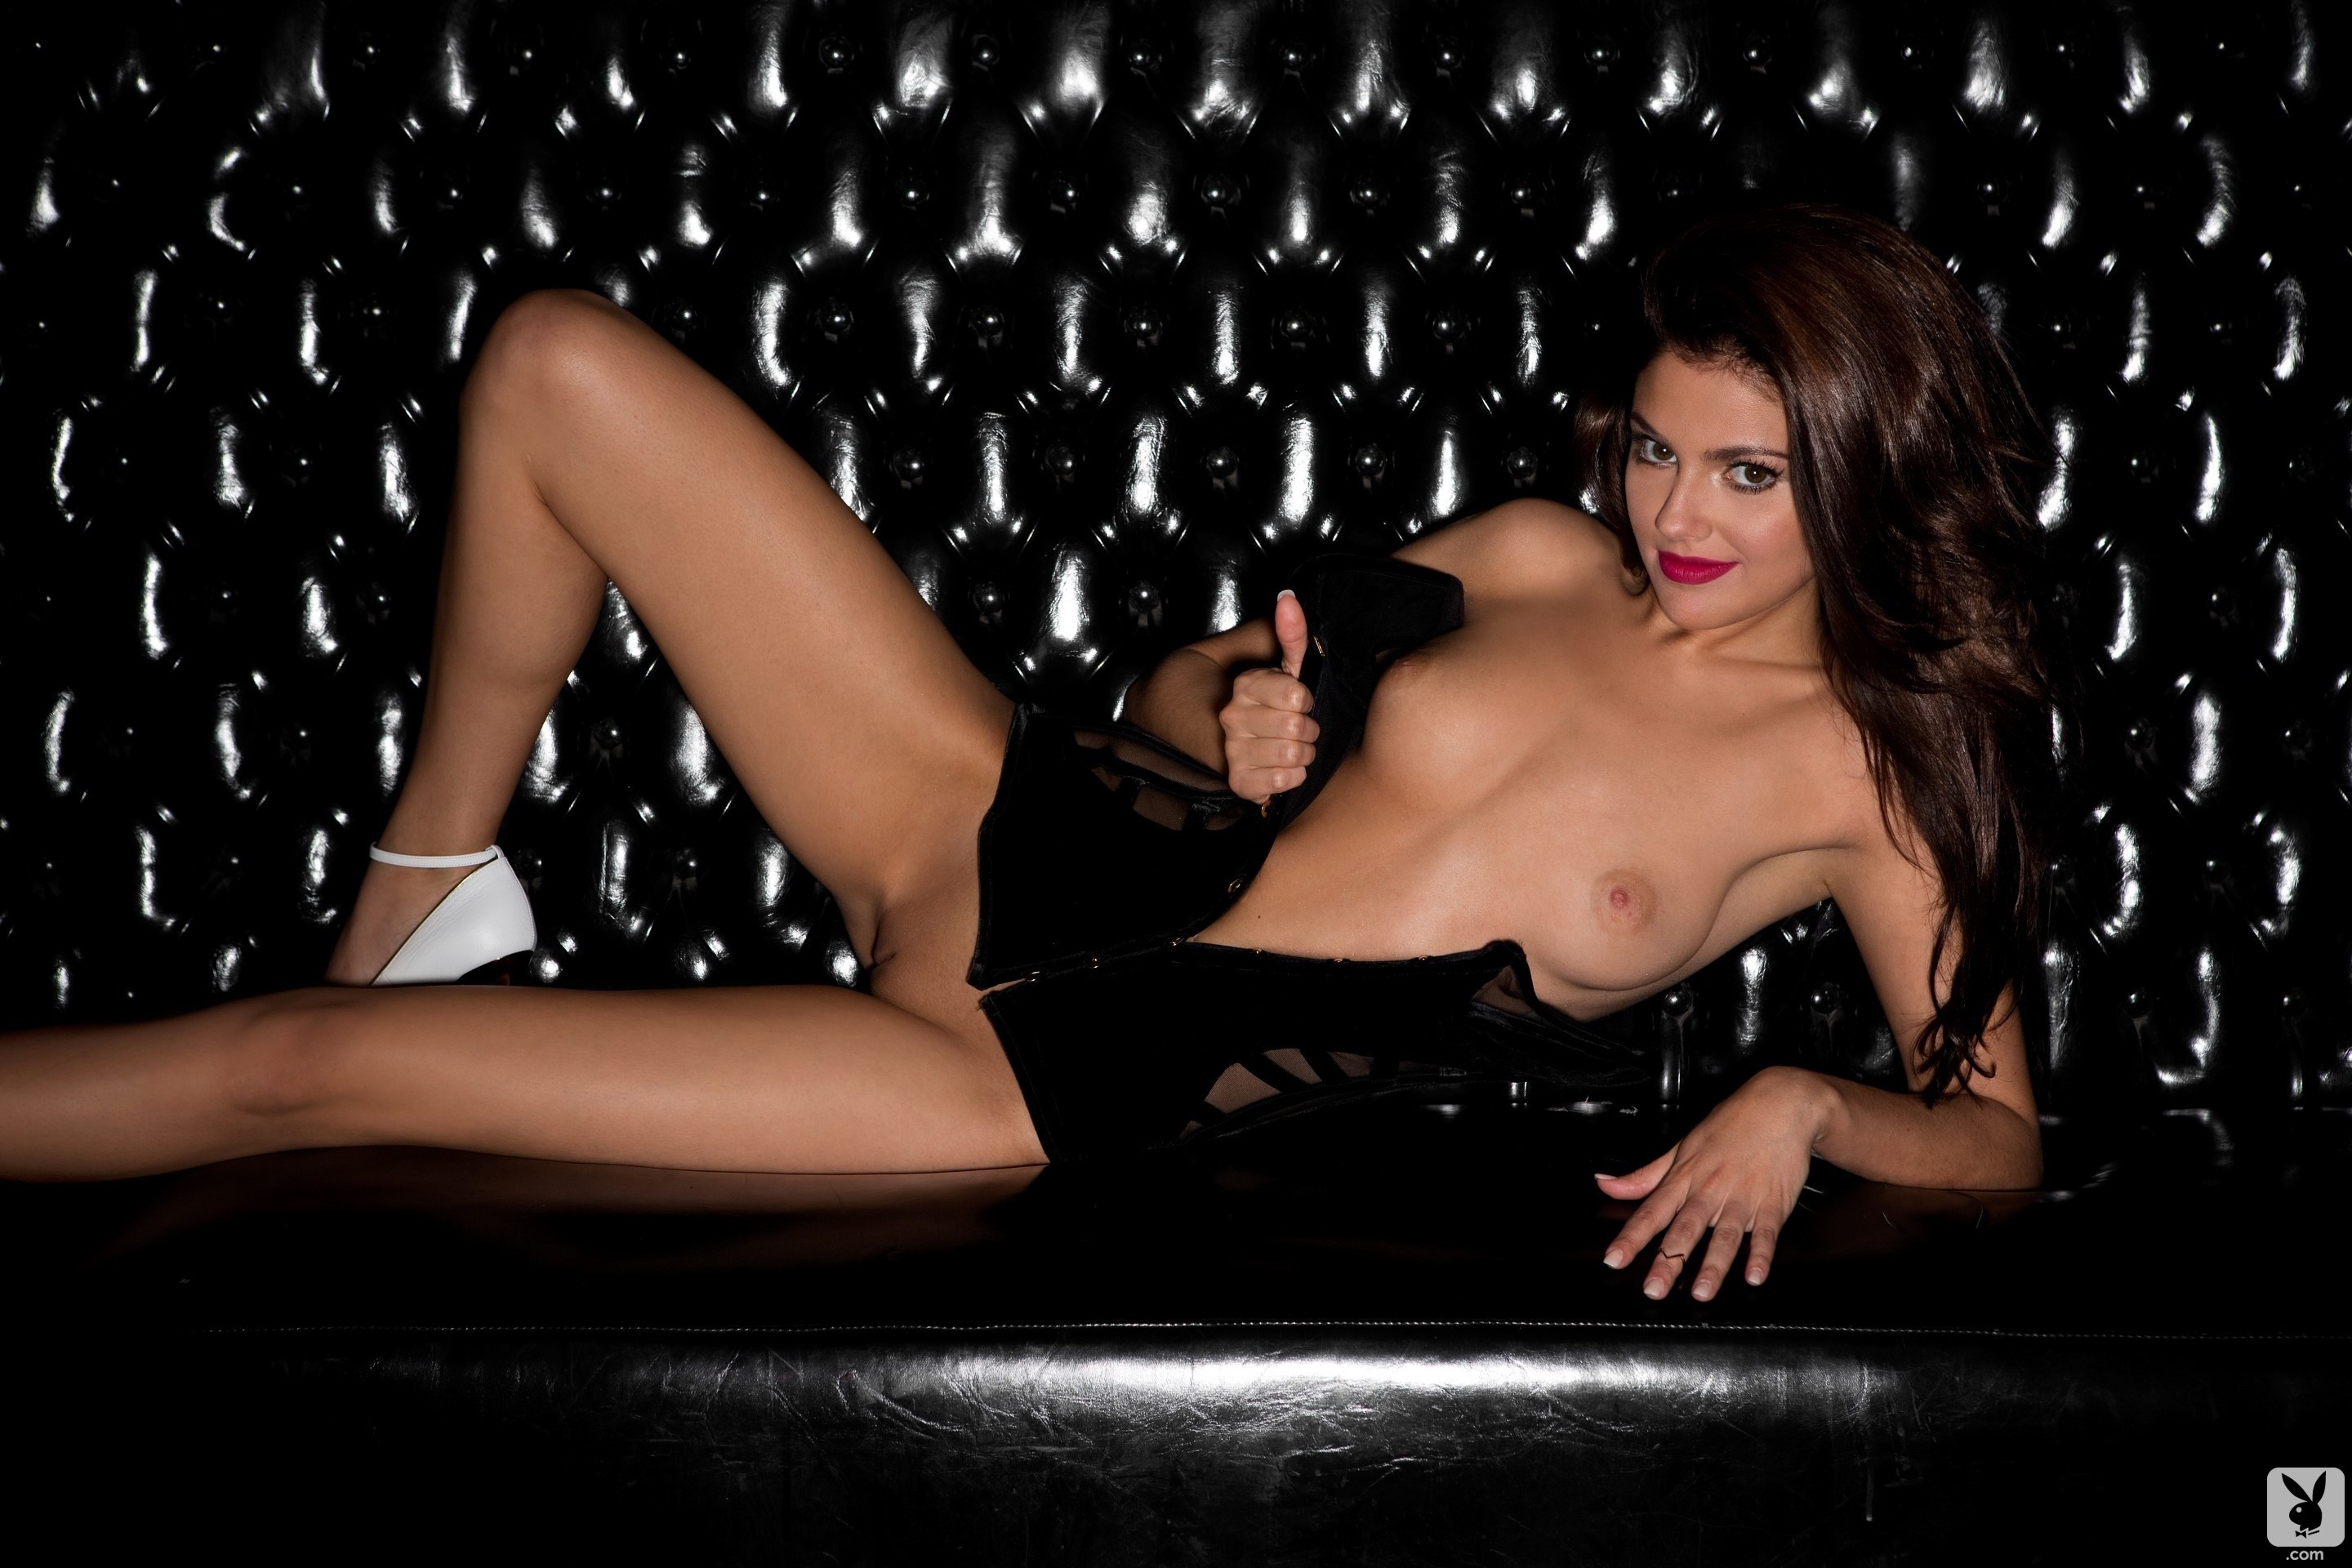 Rock free video of a naked glamour shoot